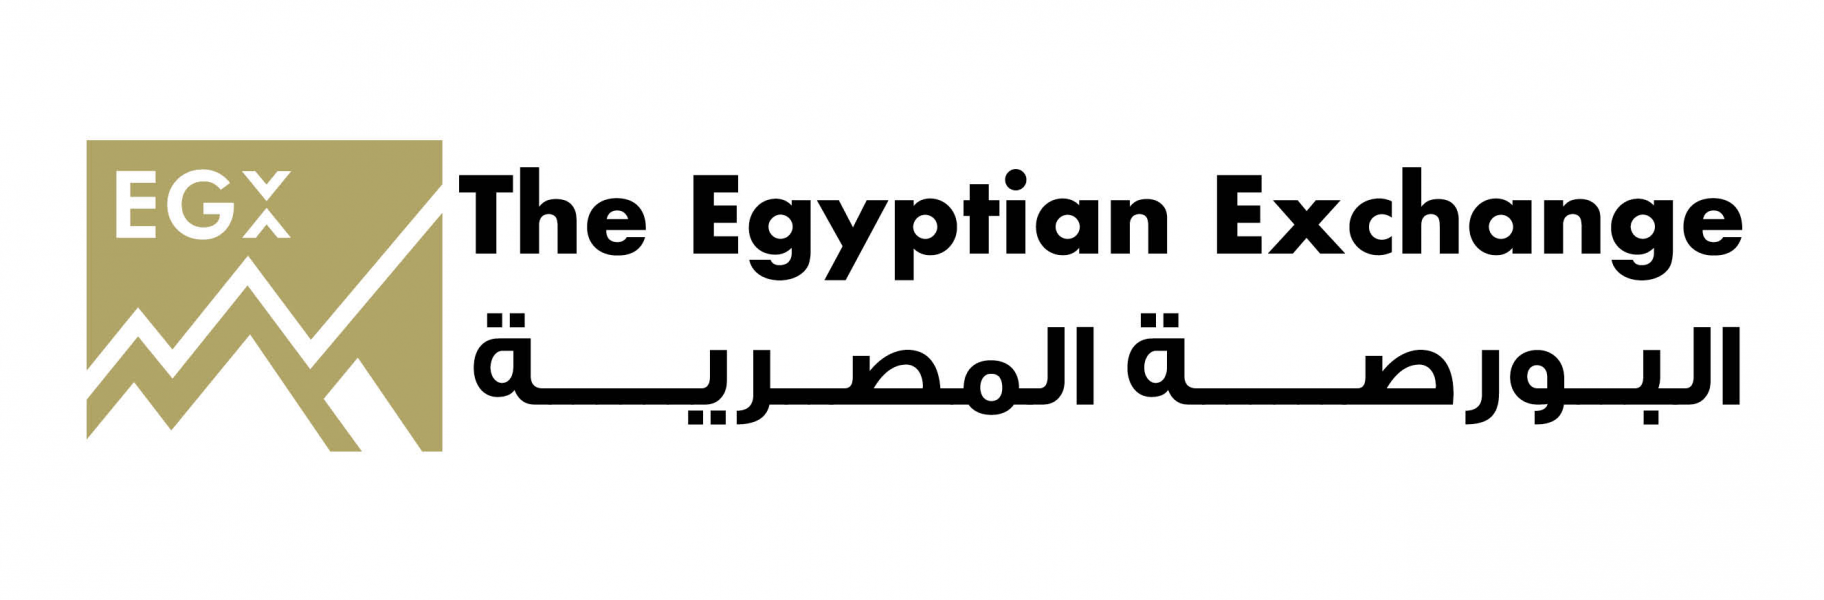 Cooperation-between-the-Egyptian-Exchange-and-the